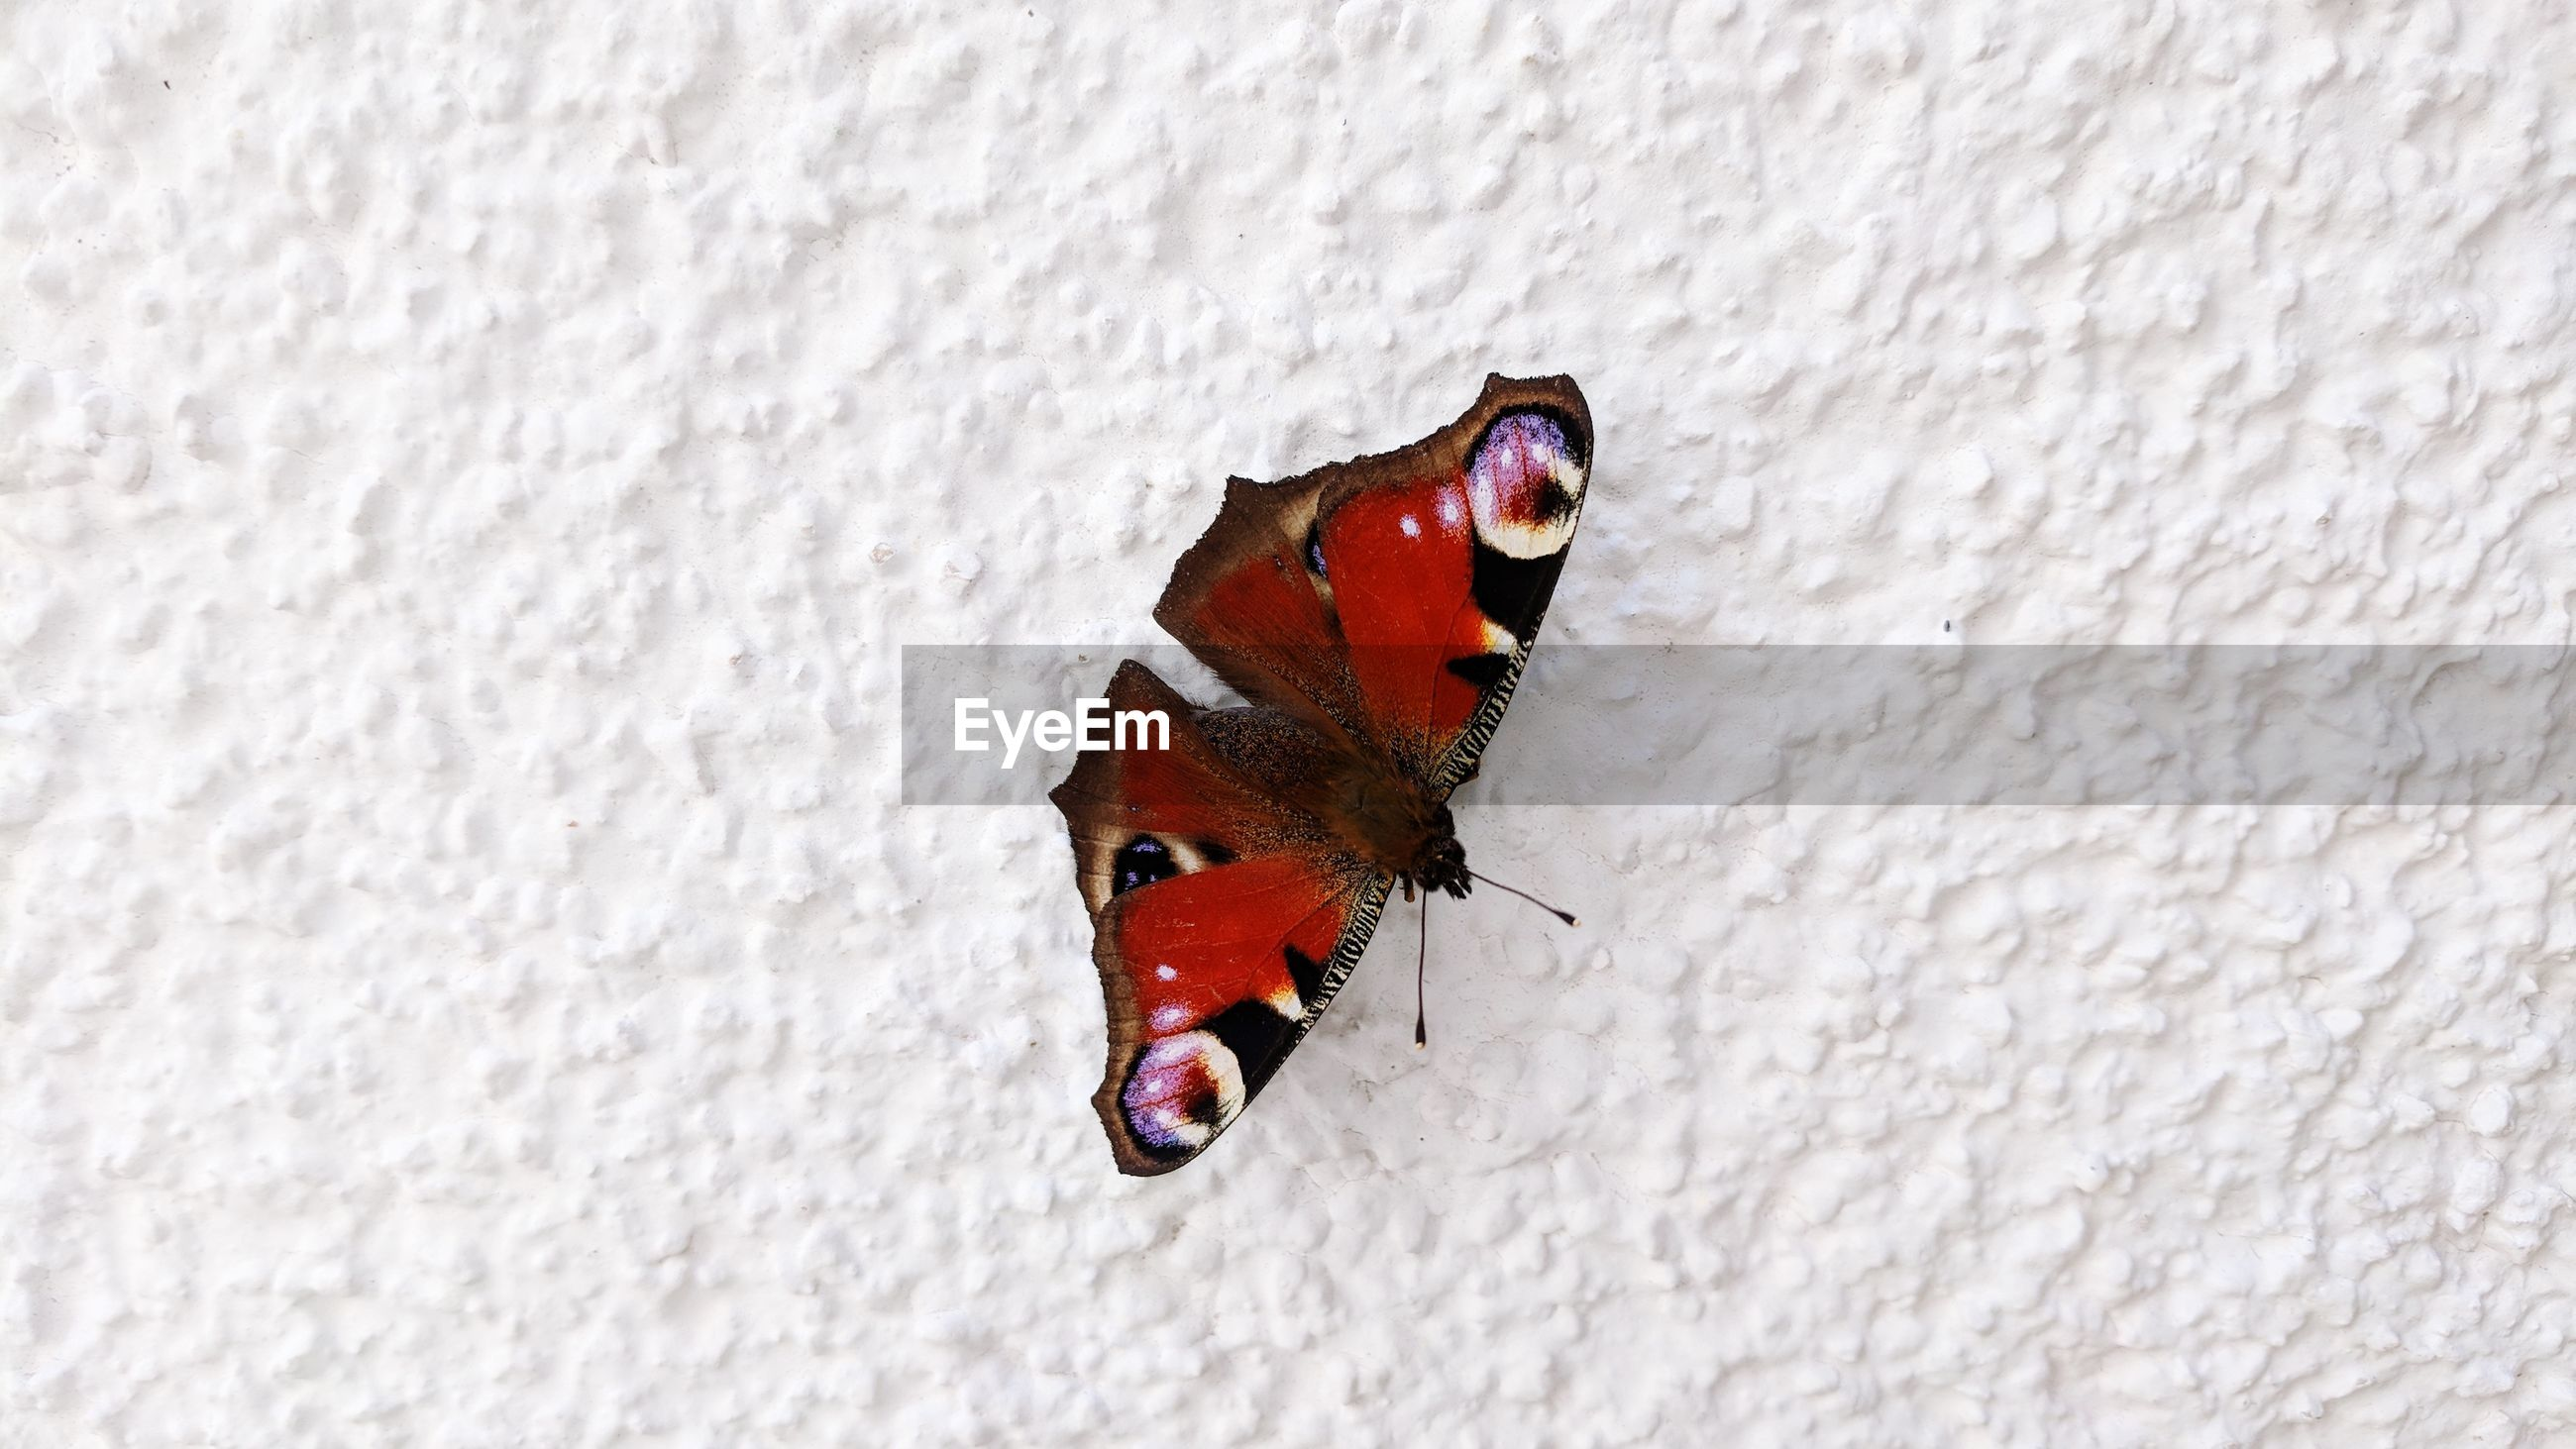 CLOSE-UP OF BUTTERFLY ON SNOW COVERED WALL